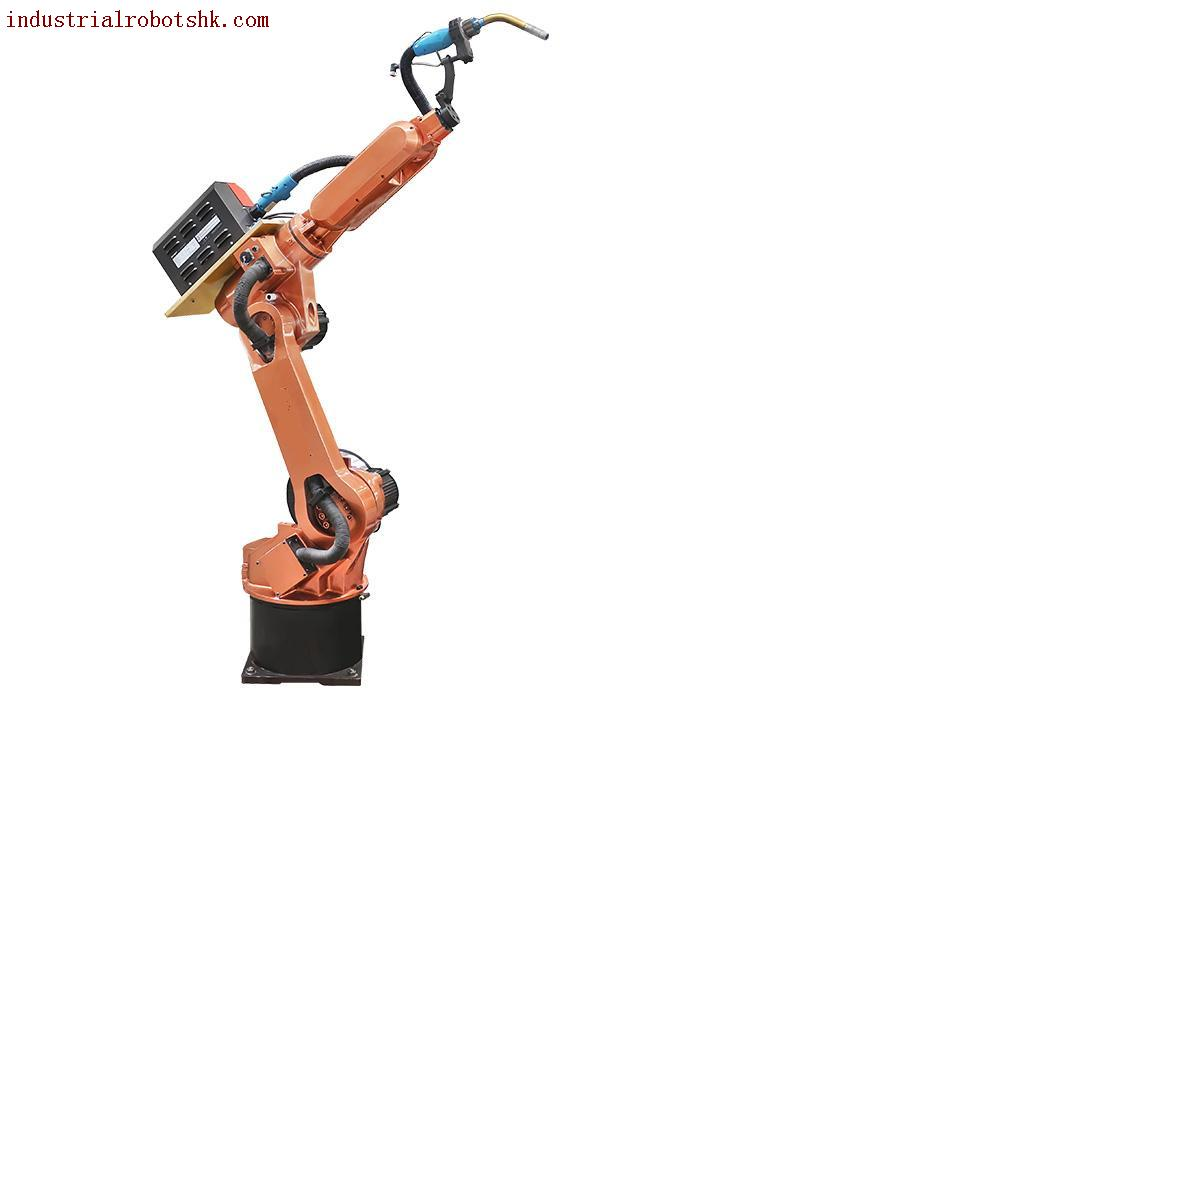 Metal Folding Industrial Robot/Robotic Arm/Manipulator, from